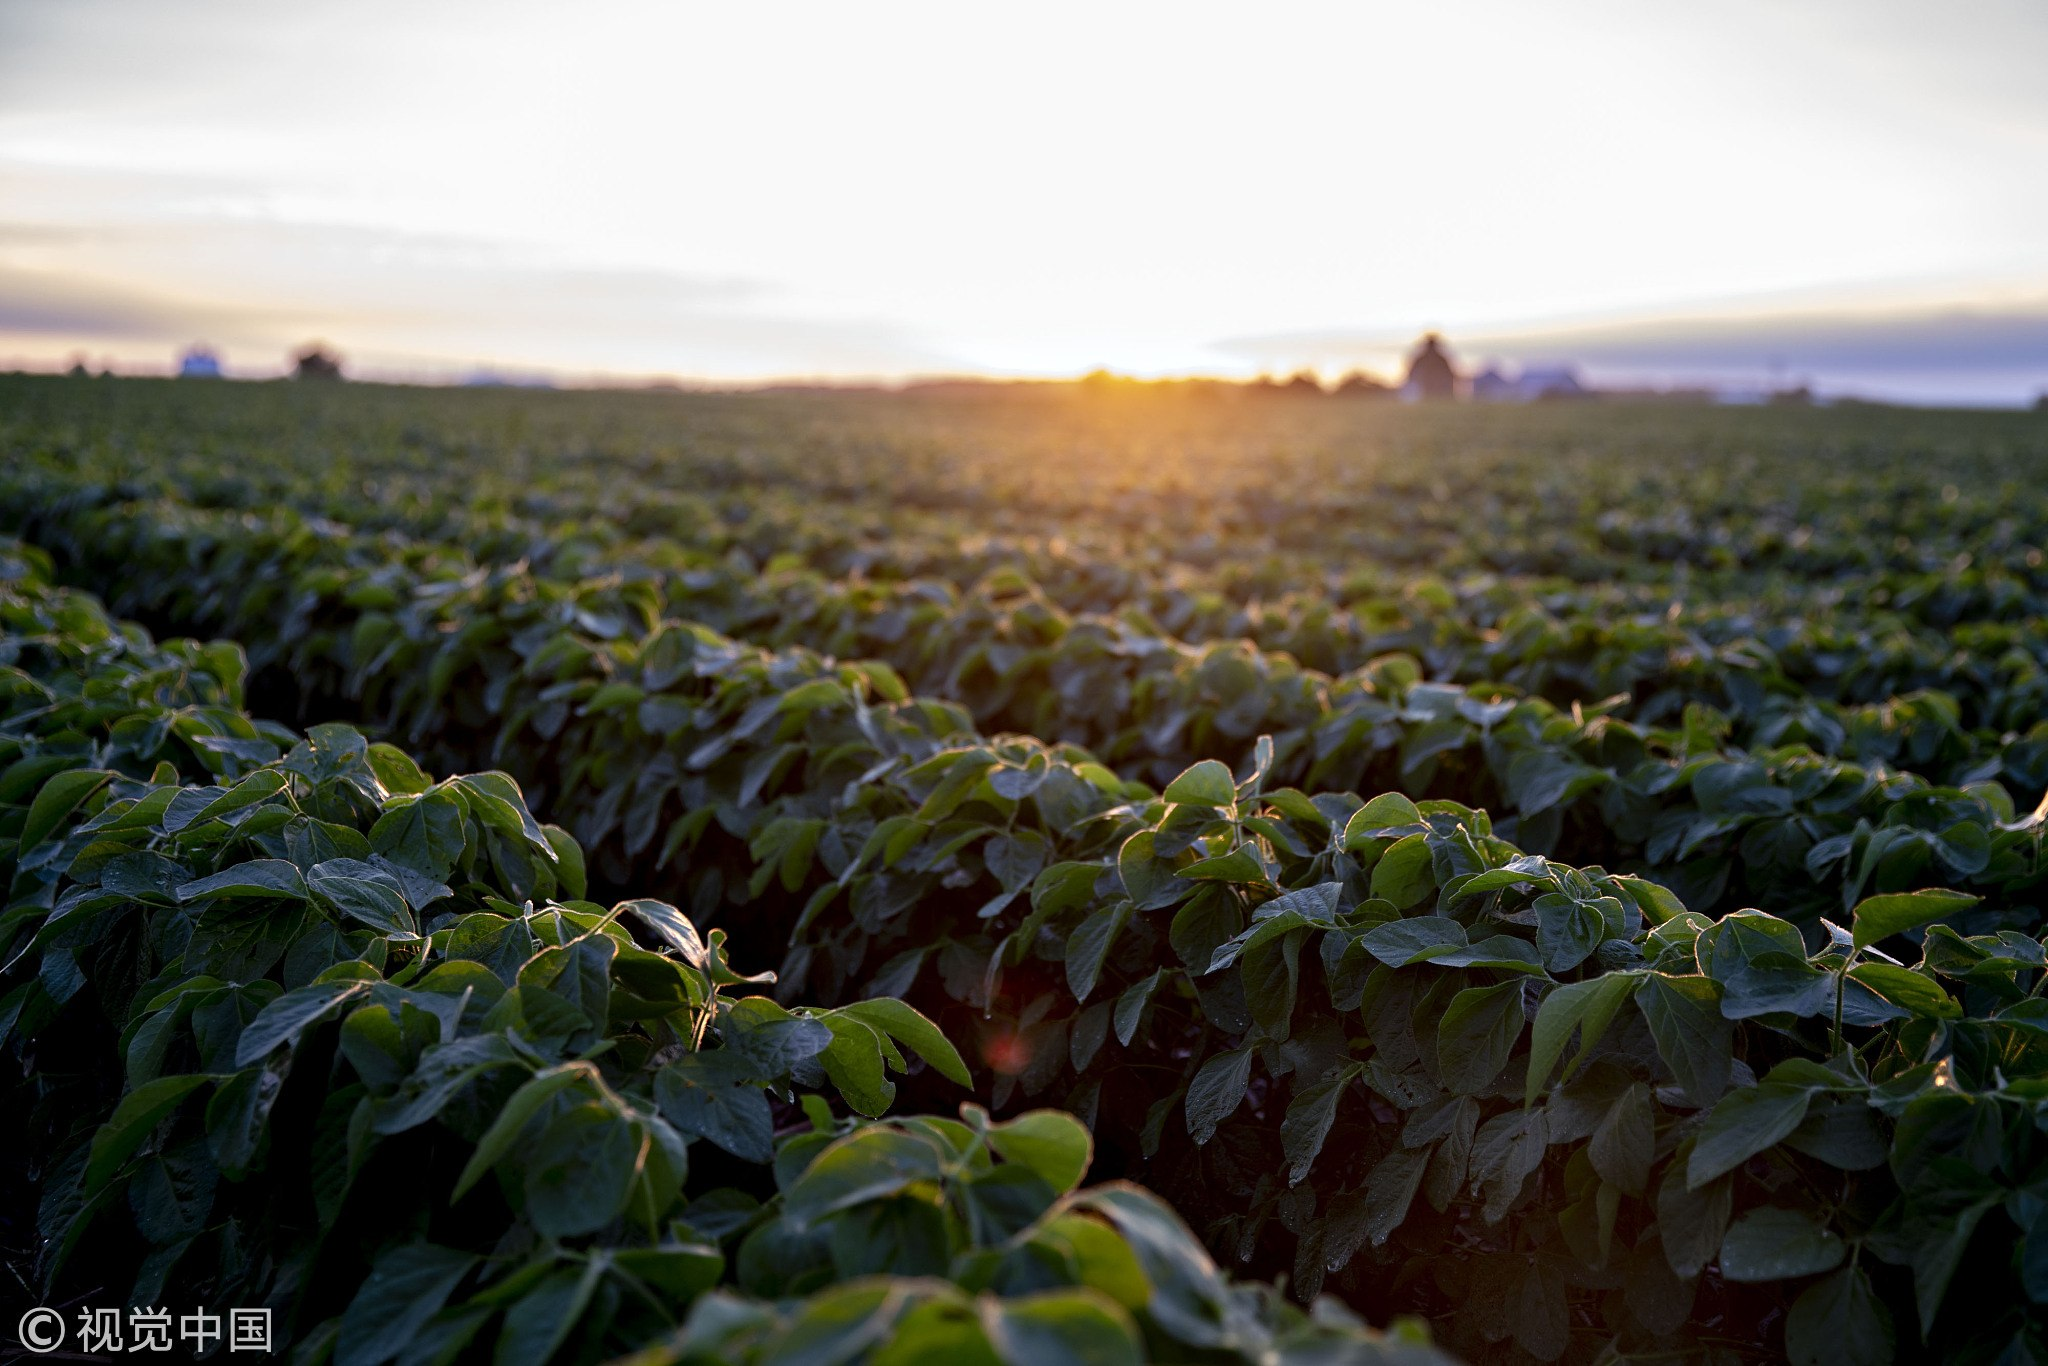 Soybean plants grow in a field near Tiskilwa, Illinois, US on June 19, 2018. A rout in commodities deepened as the threat of a trade war between the world's two biggest economies intensified, hitting markets from steel to soybeans. [Photo:VCG]